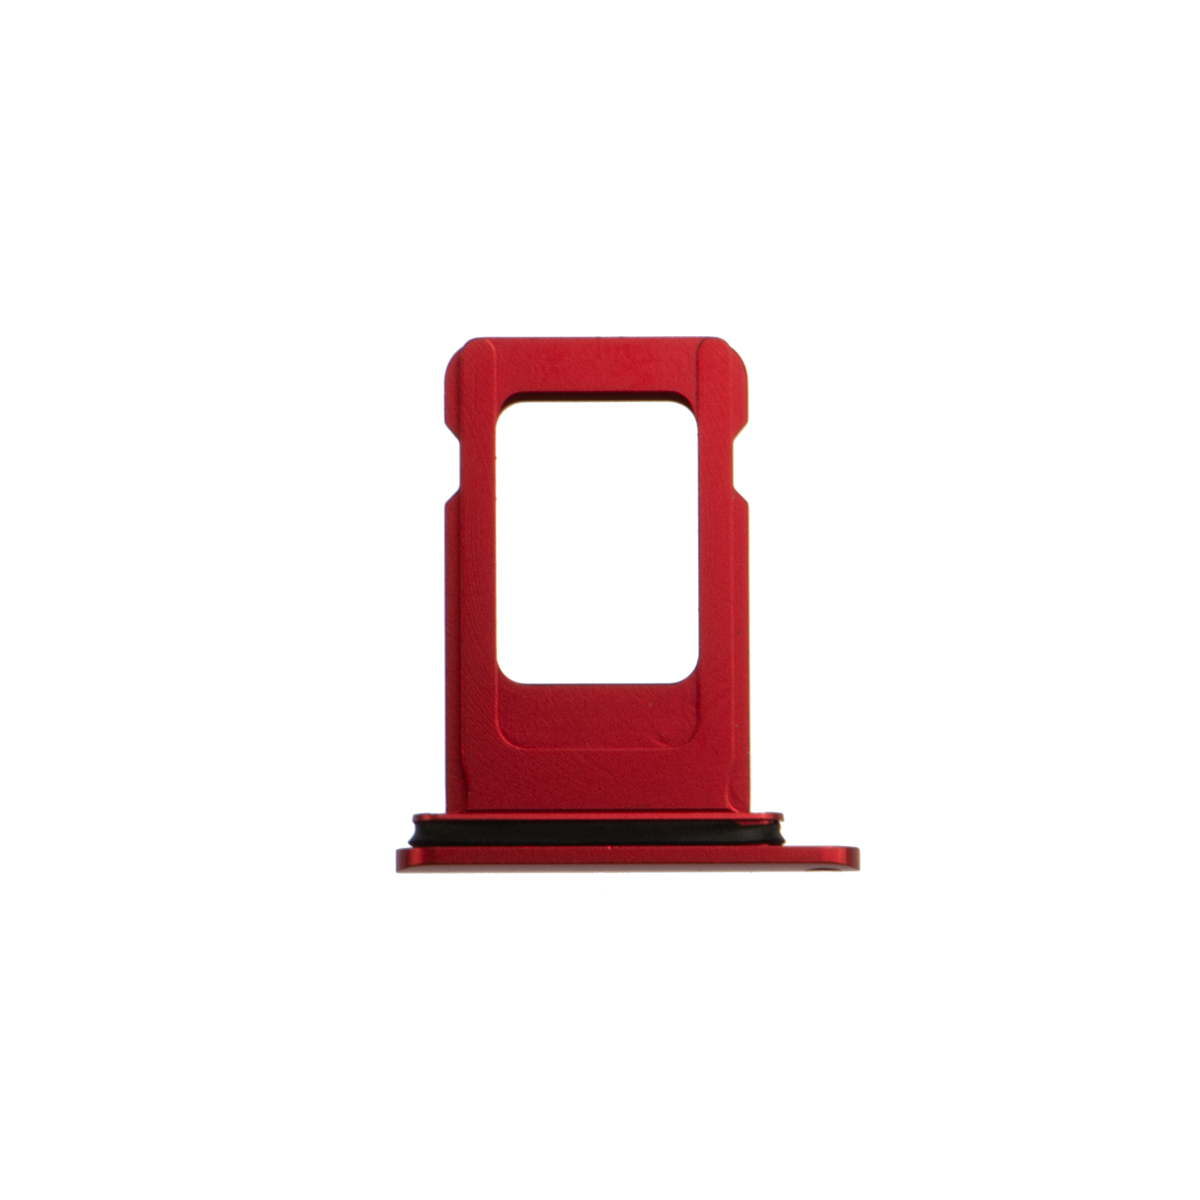 iPhone XR Sim Card Tray Red